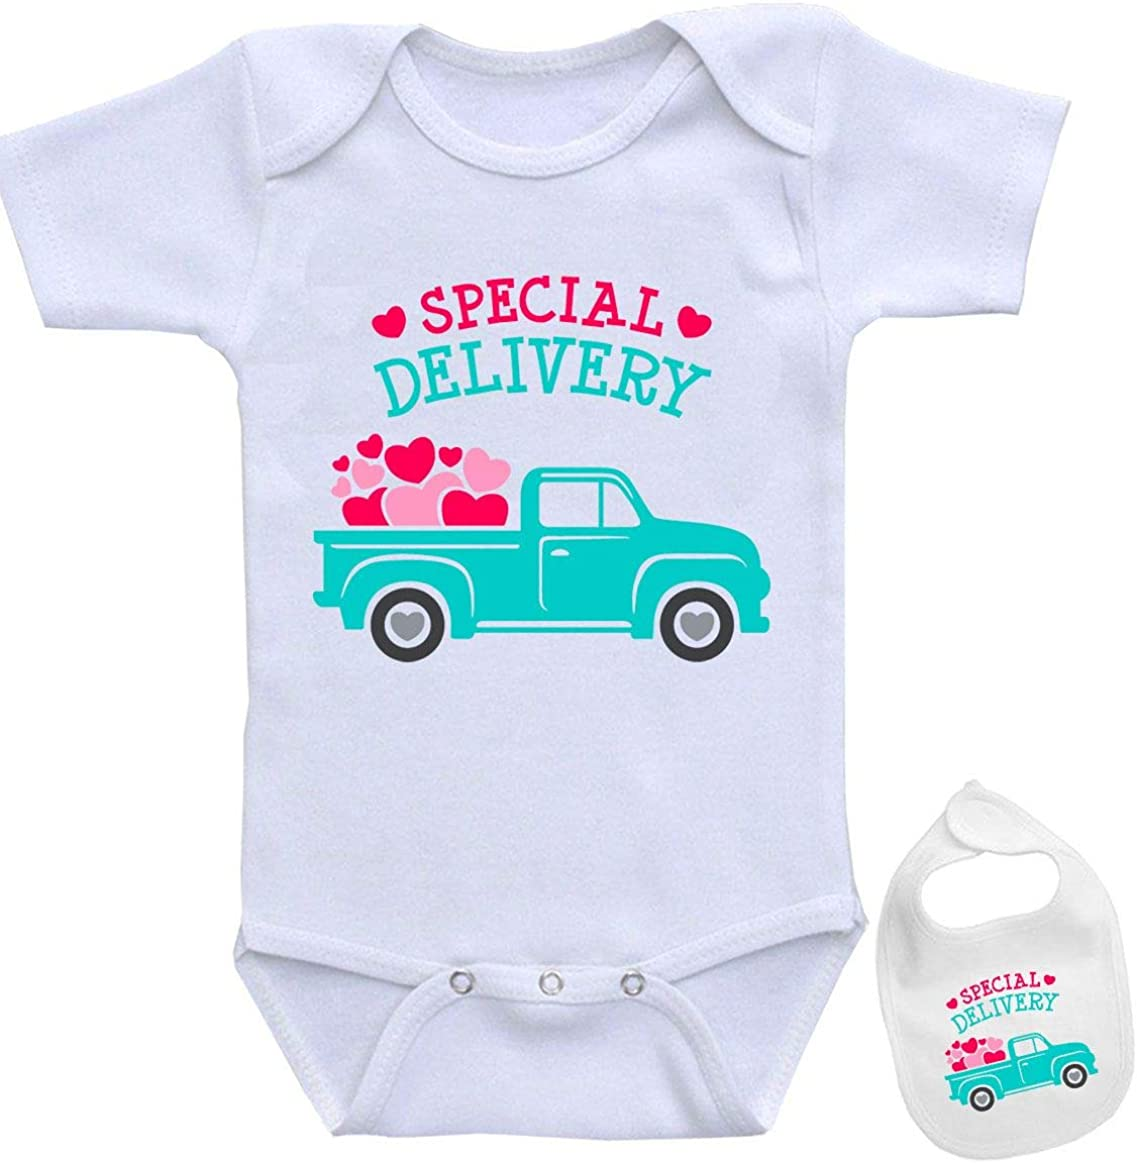 Special Delivery -Cute Funny Shirt Newborn Baby Bodysuit Outfit Onesie & Bib Set